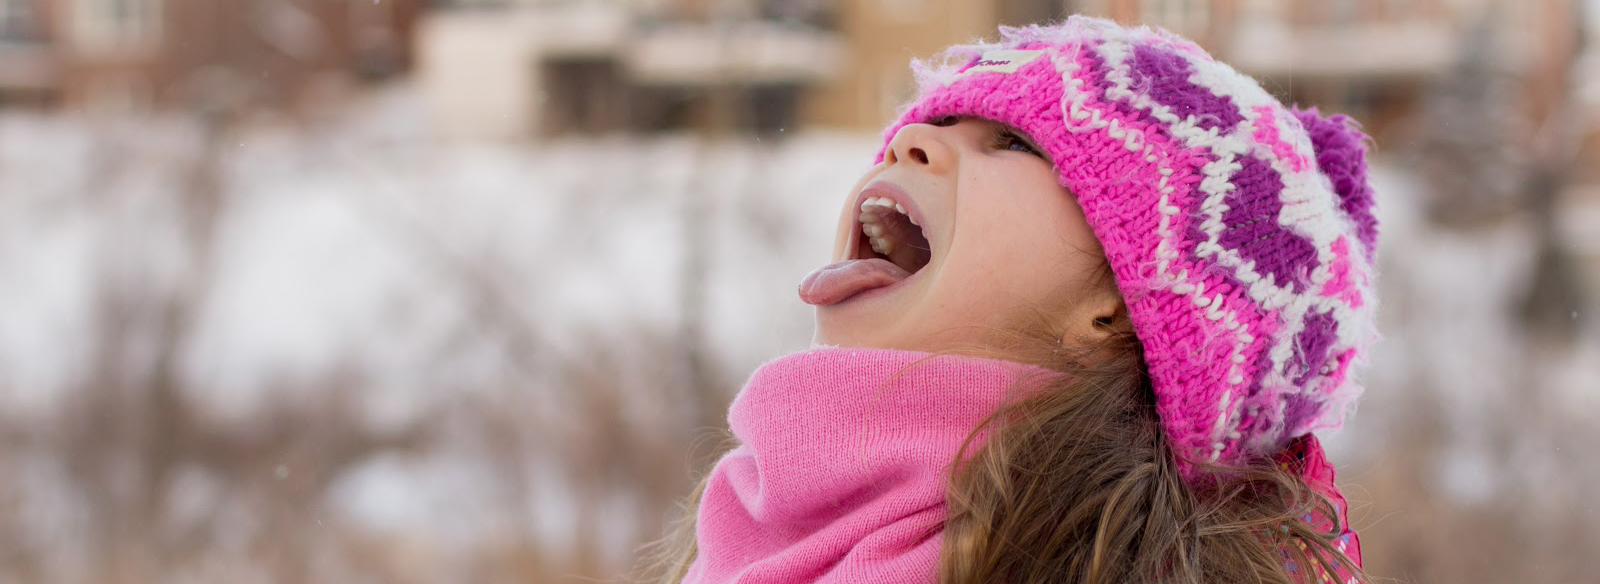 a girl wearing a pink hat catching snowflakes